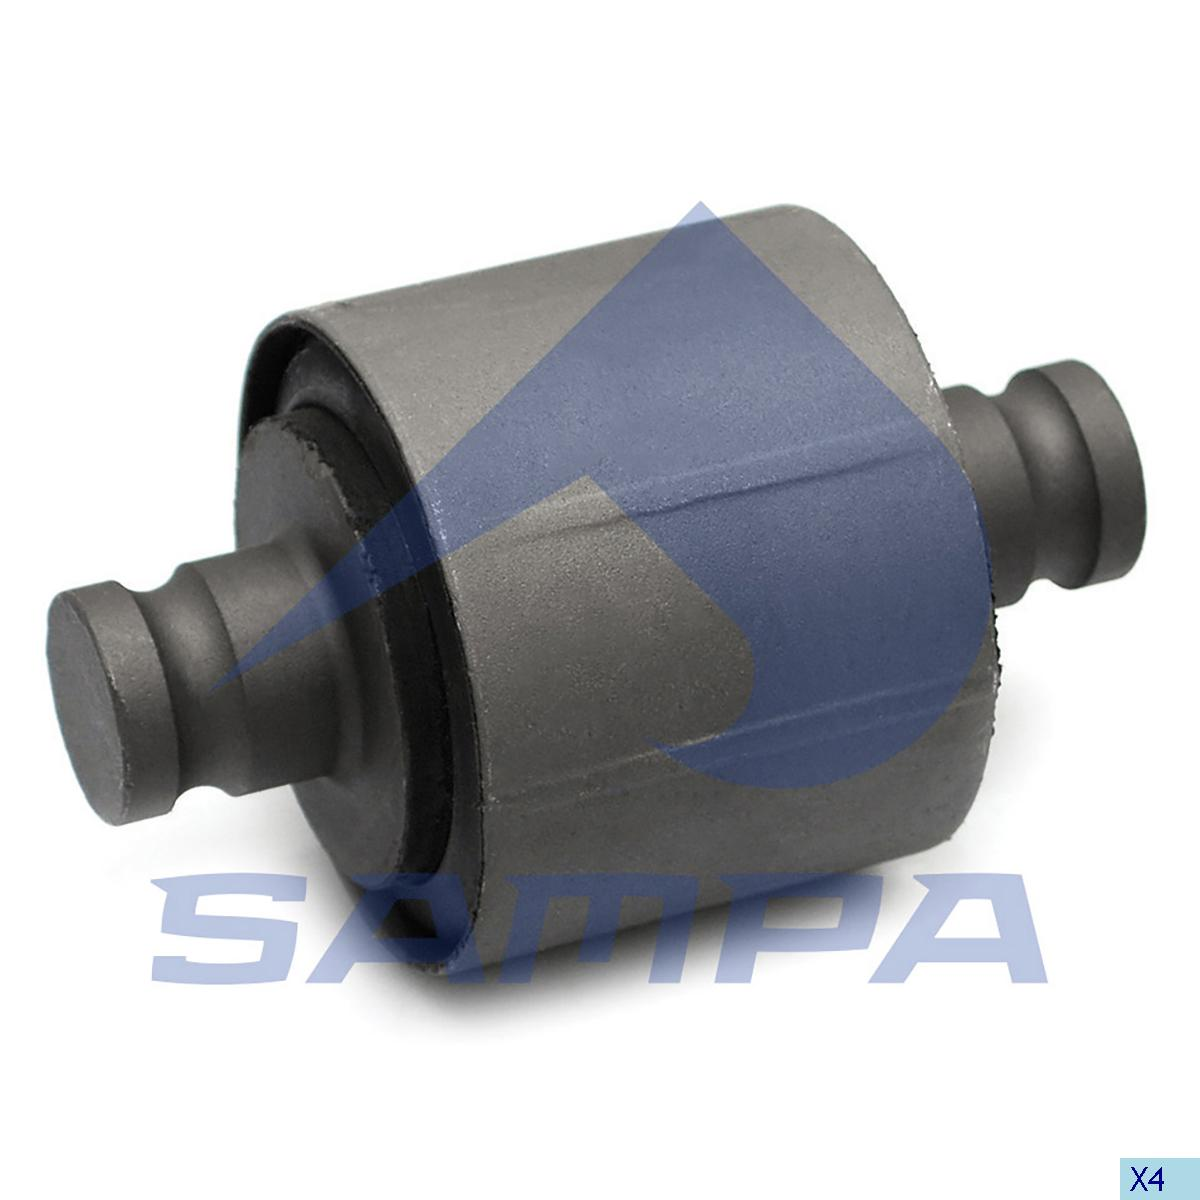 Rubber Bushing, Axle Rod, Volvo, Suspension